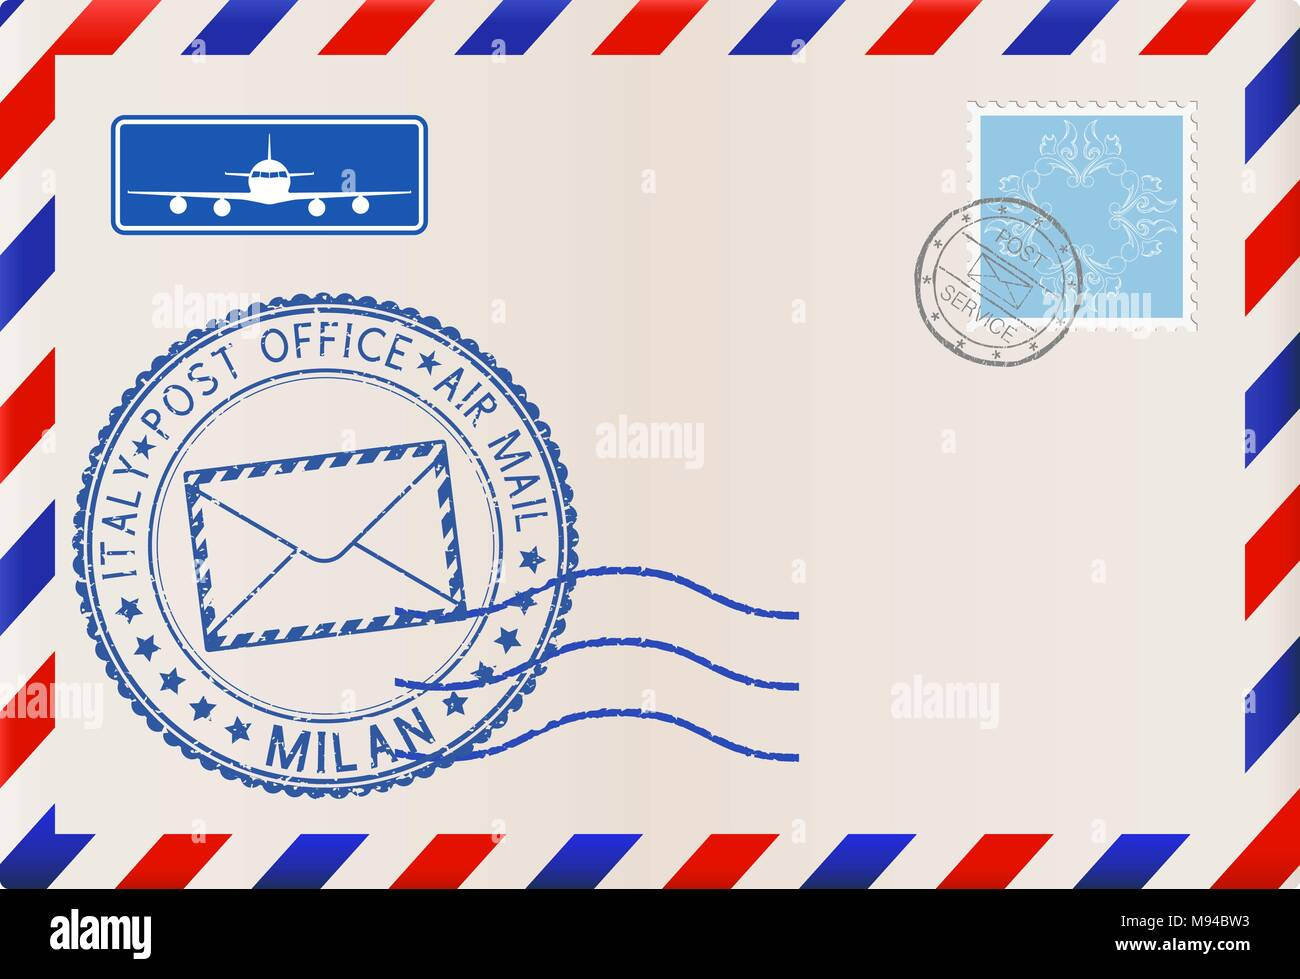 Envelope with MILAN stamp. International mail postage with postmark and stamps - Stock Vector